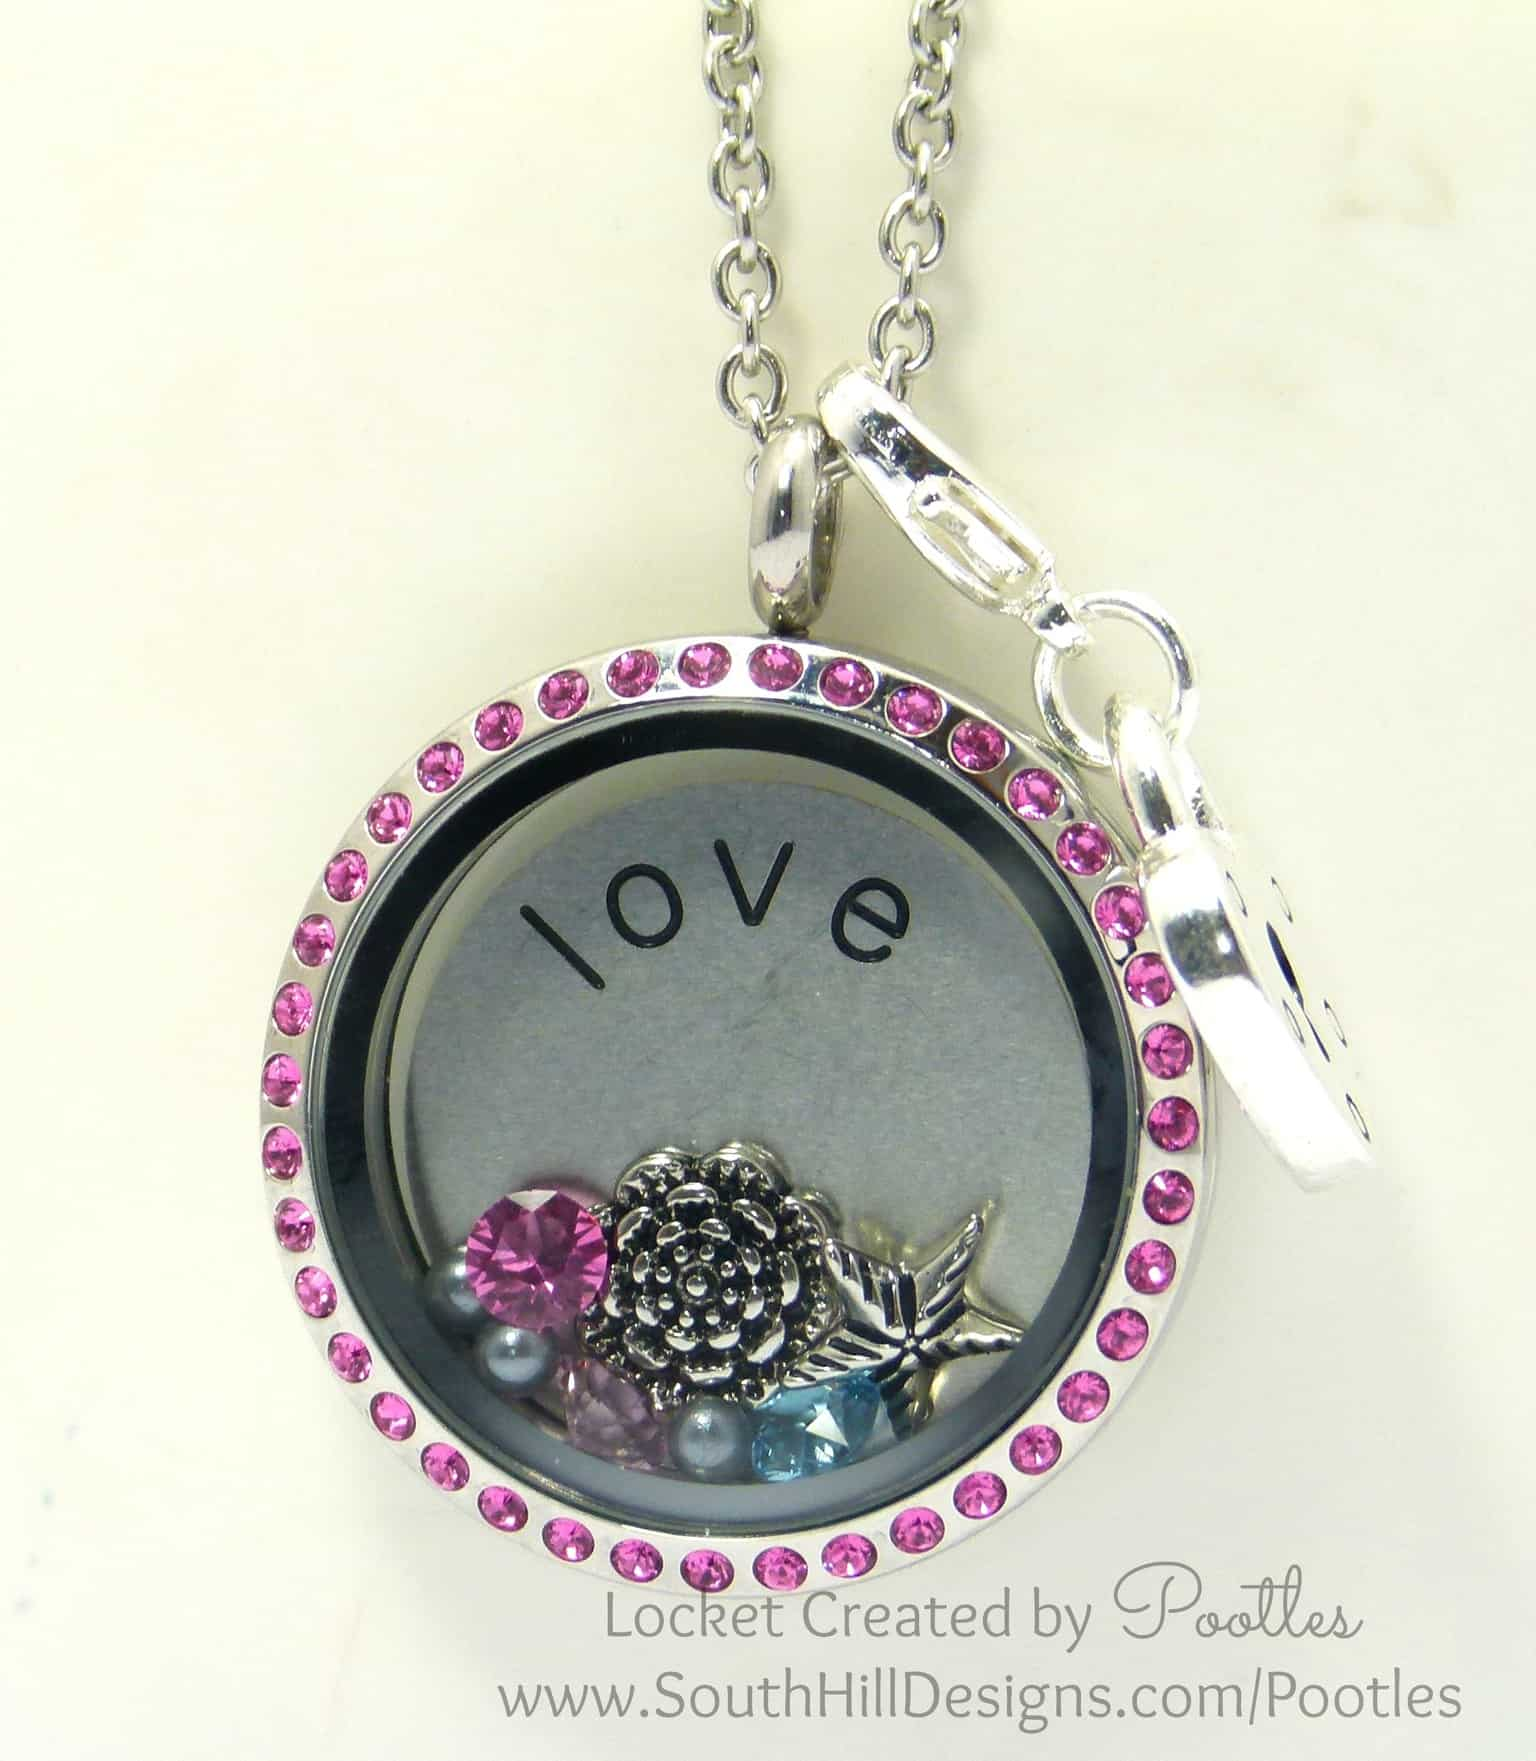 Vintage Pink with a Splash of Blue - South Hill Designs Locket Close Up